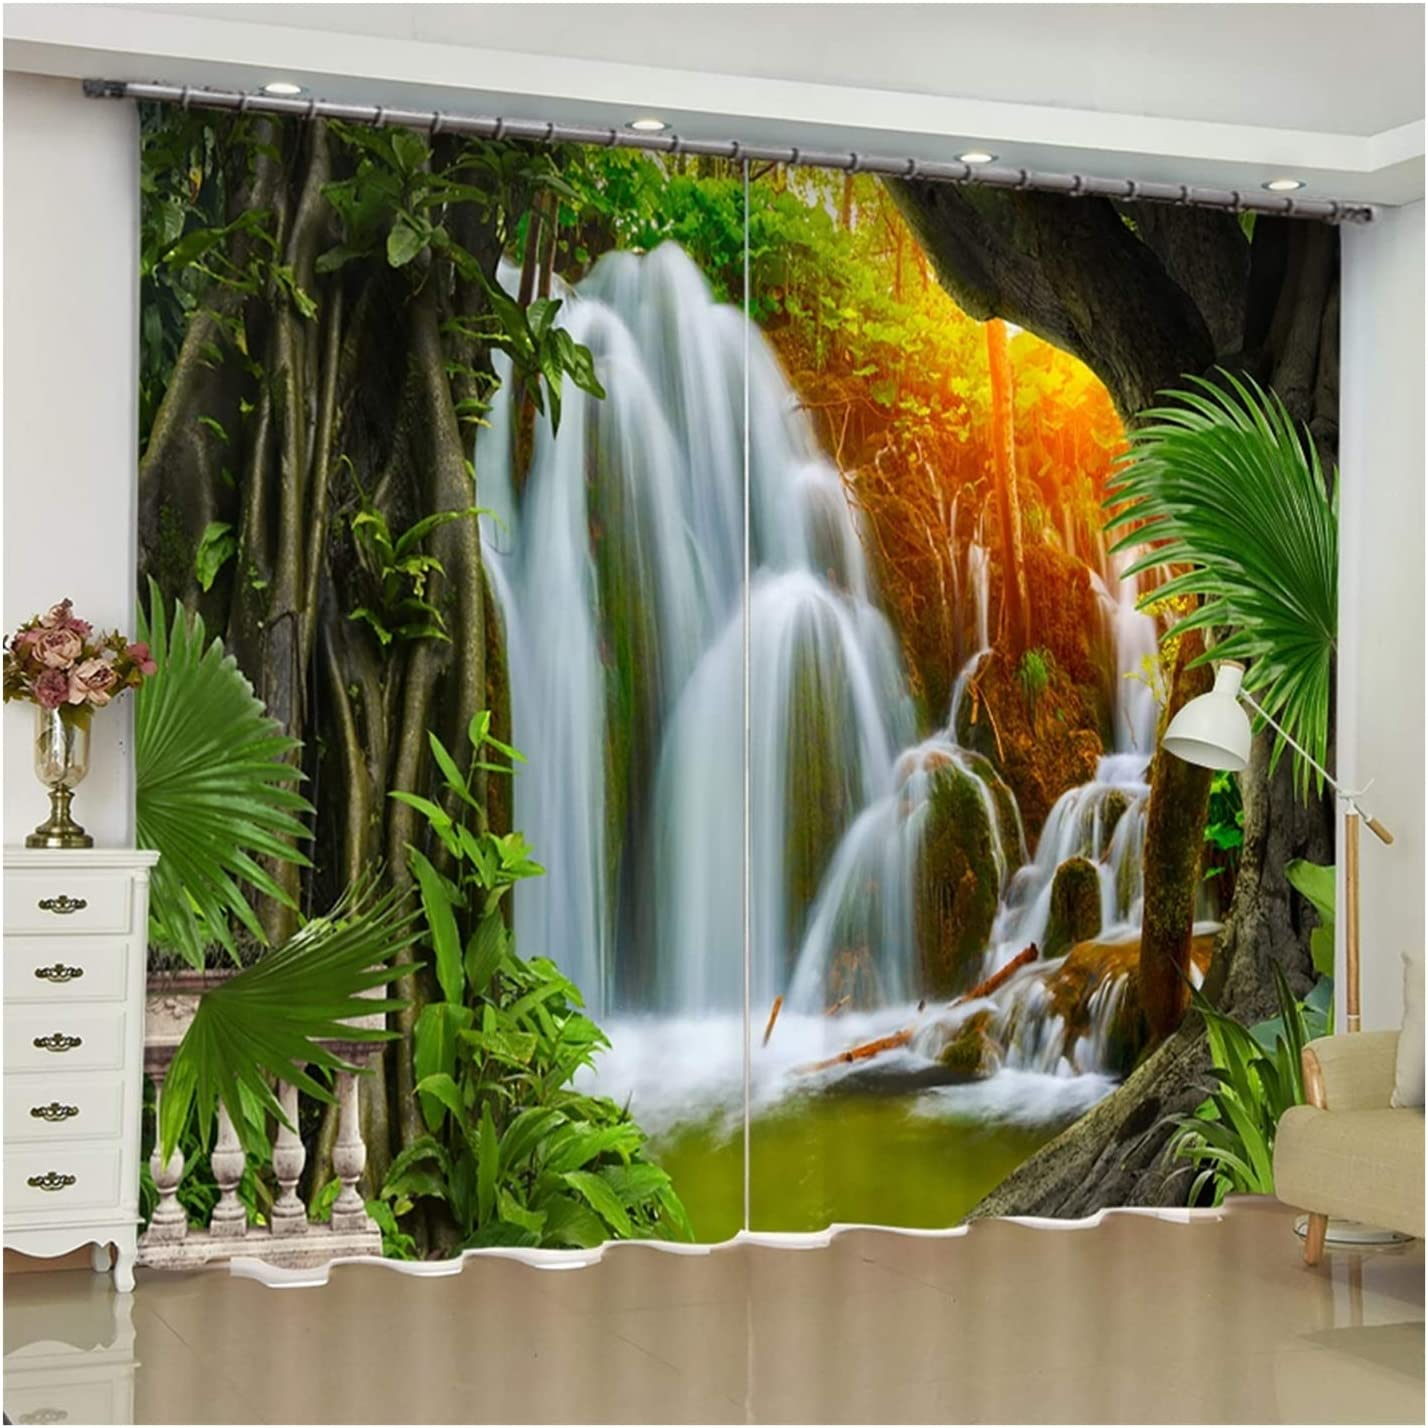 Daesar Window Inventory OFFicial mail order cleanup selling sale Curtains for 2 Bedroom Darkening Panels